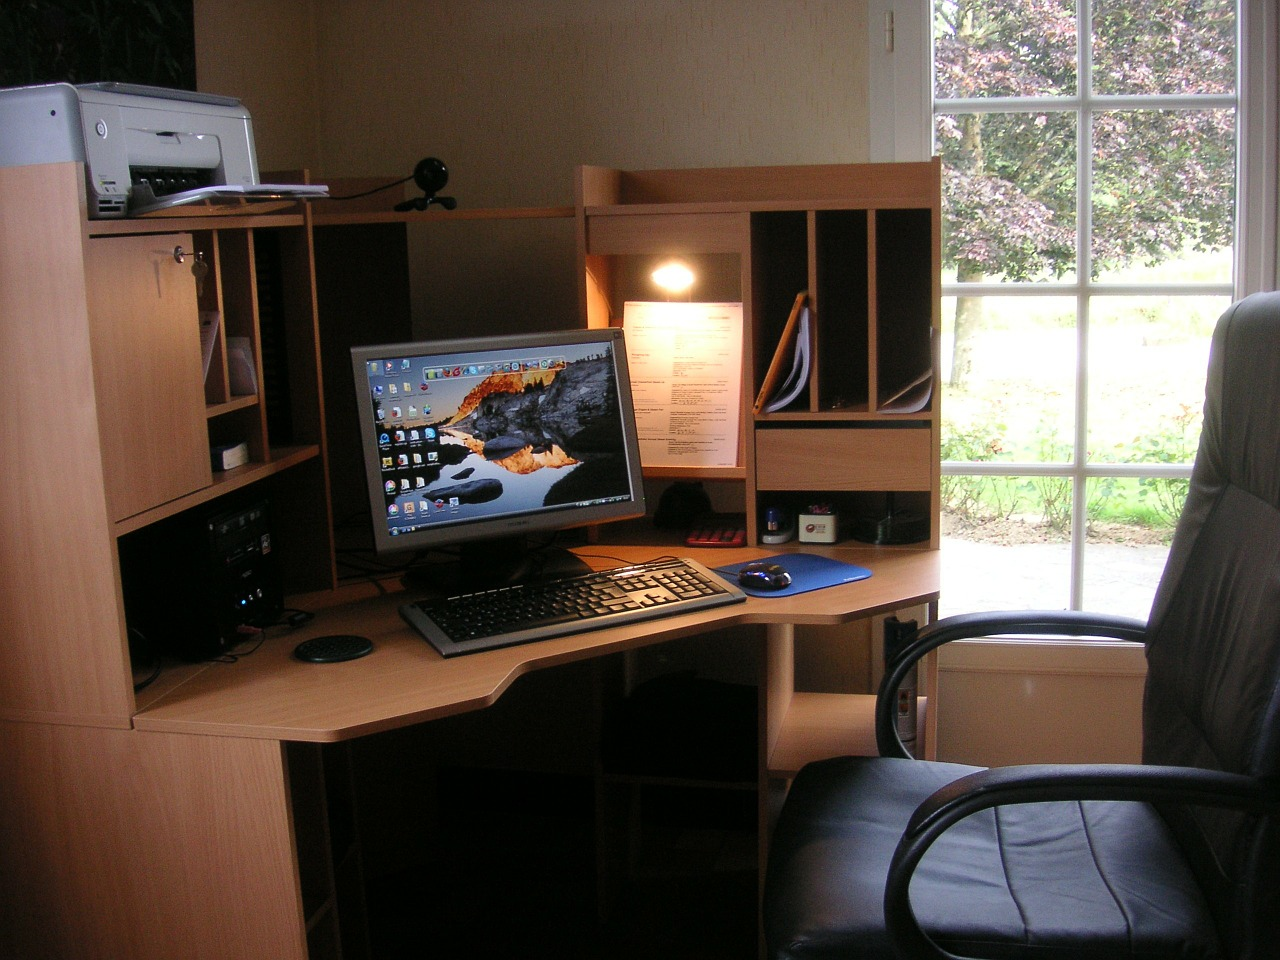 work-space-at home interior